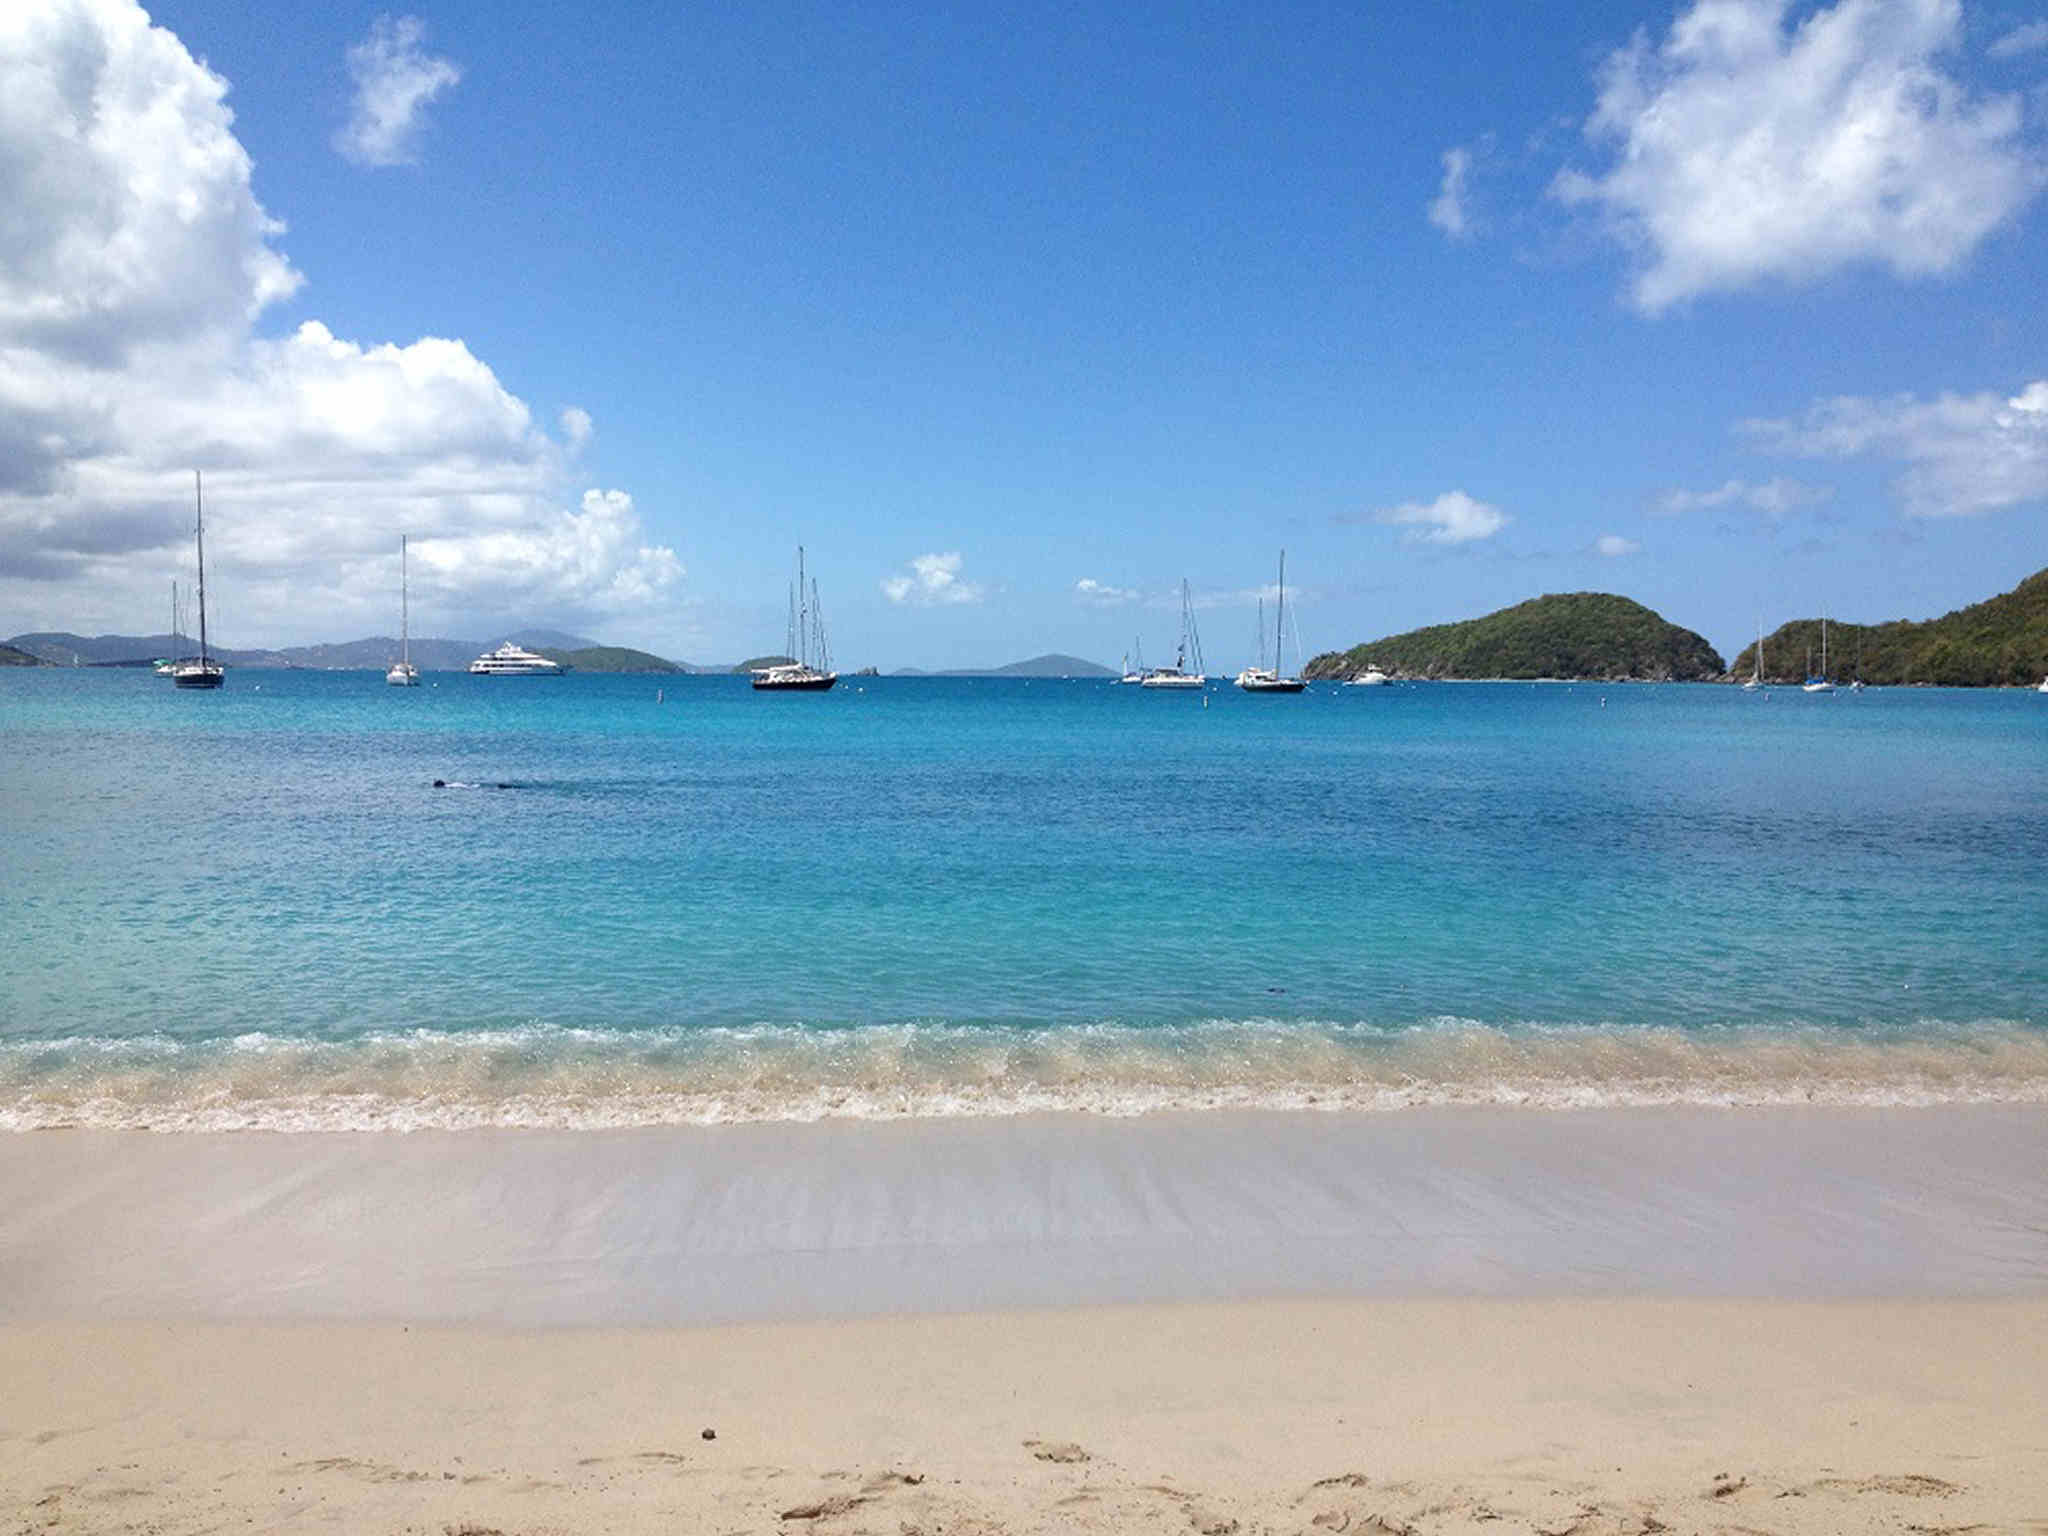 Beach on St. John Island